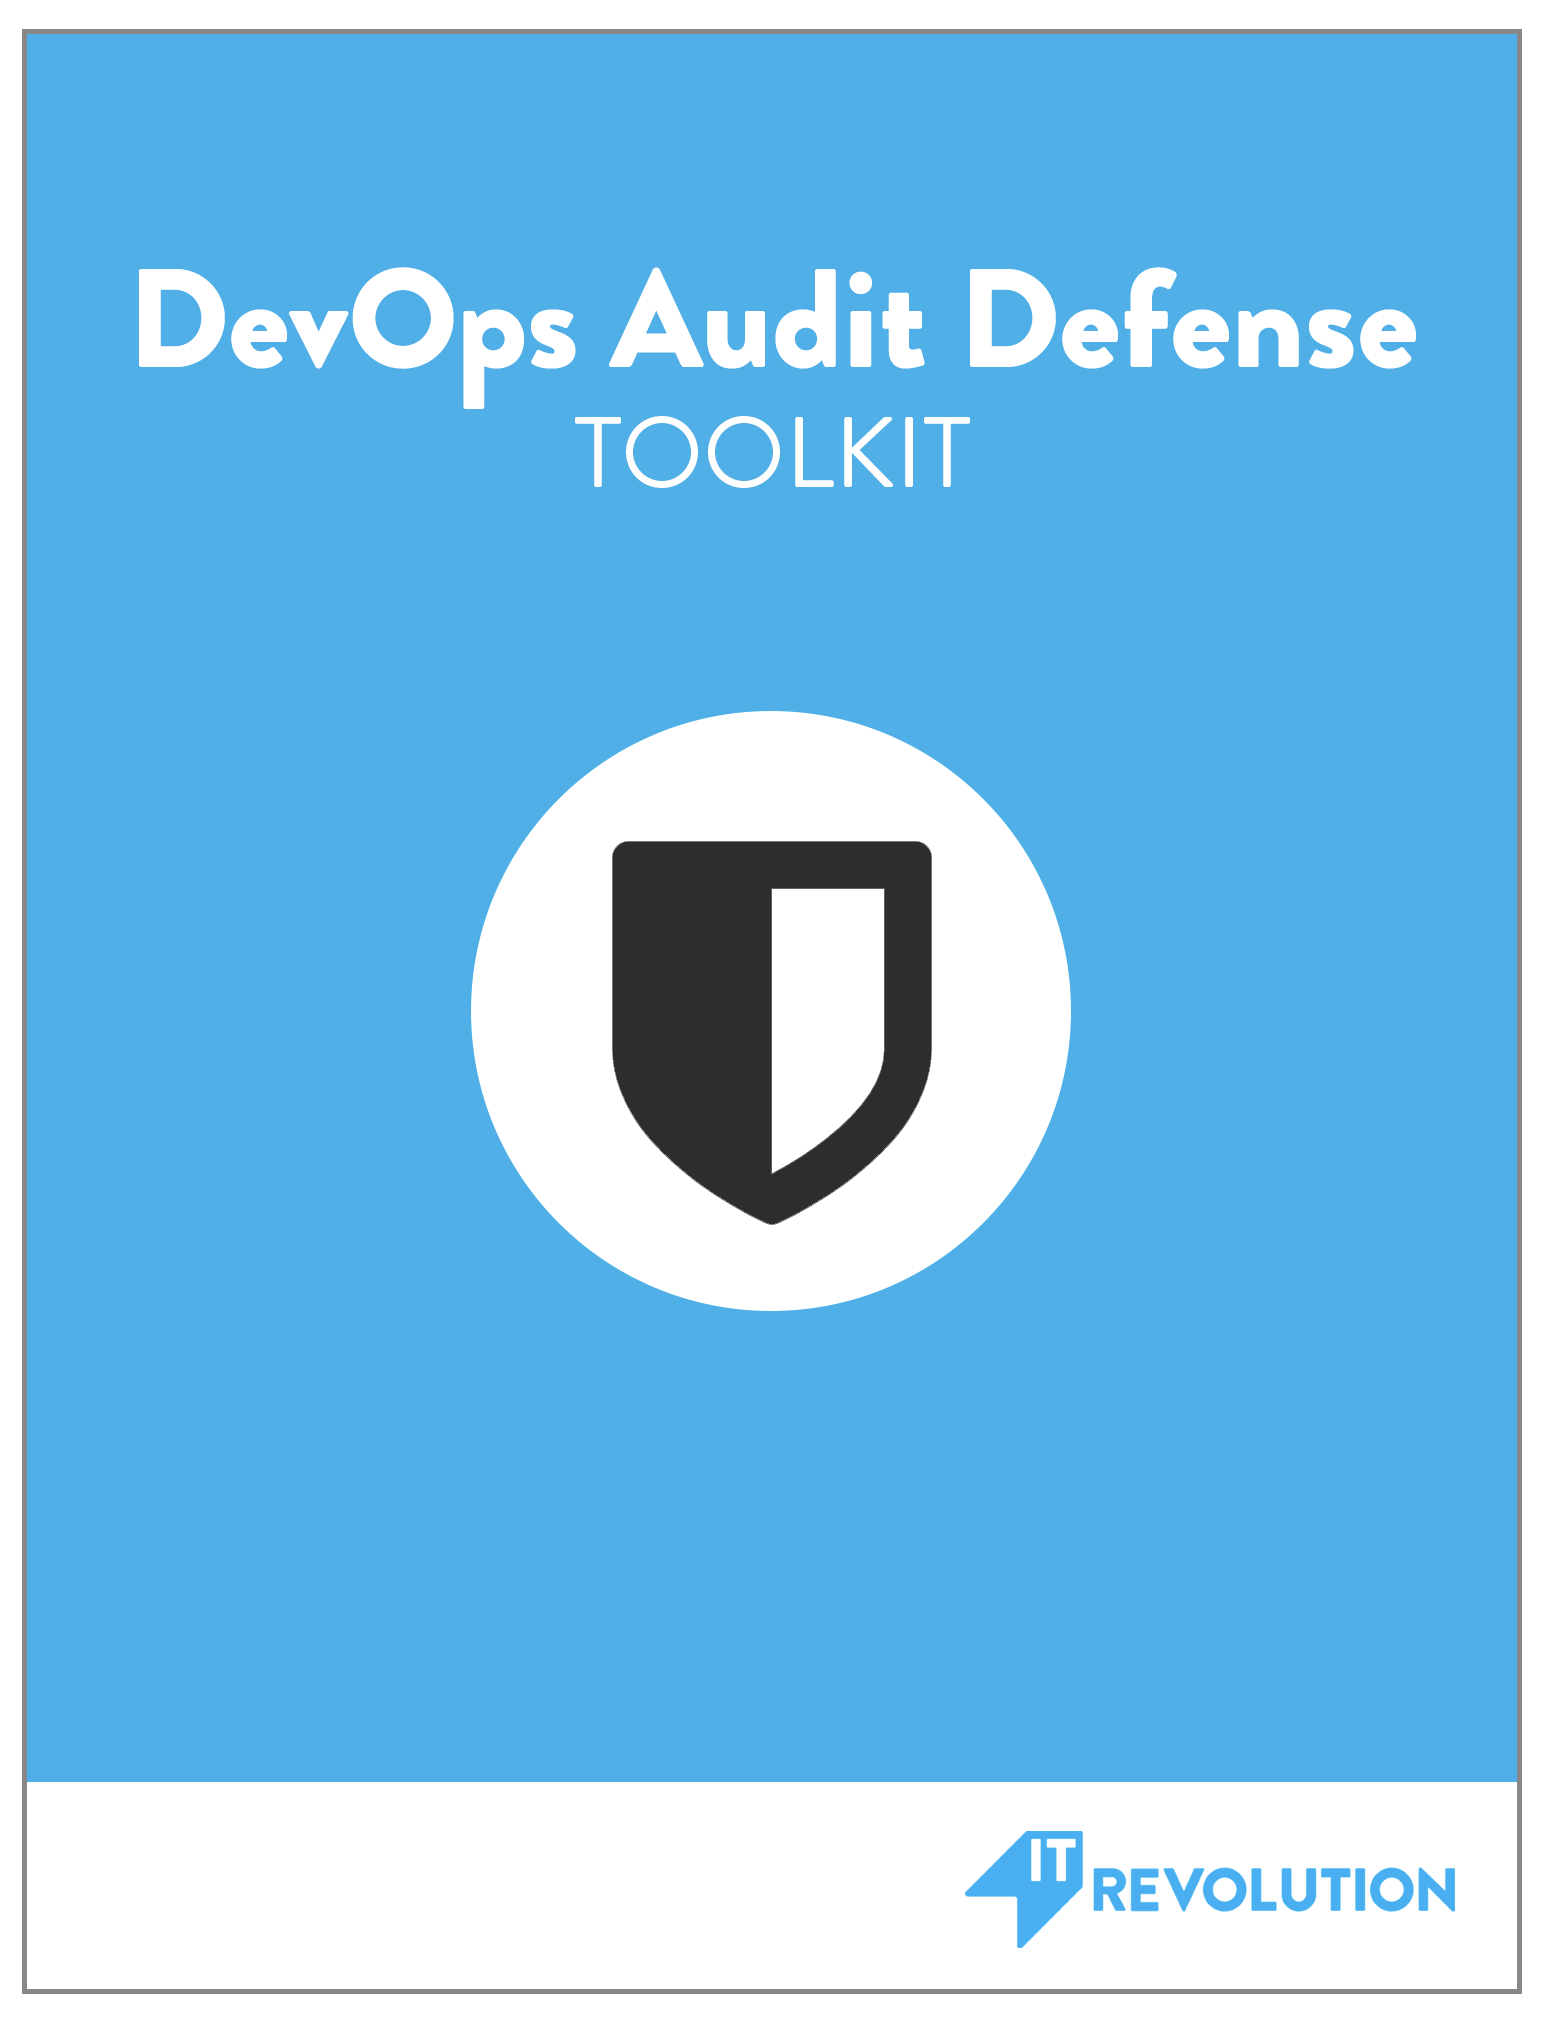 devops audit defense toolkit